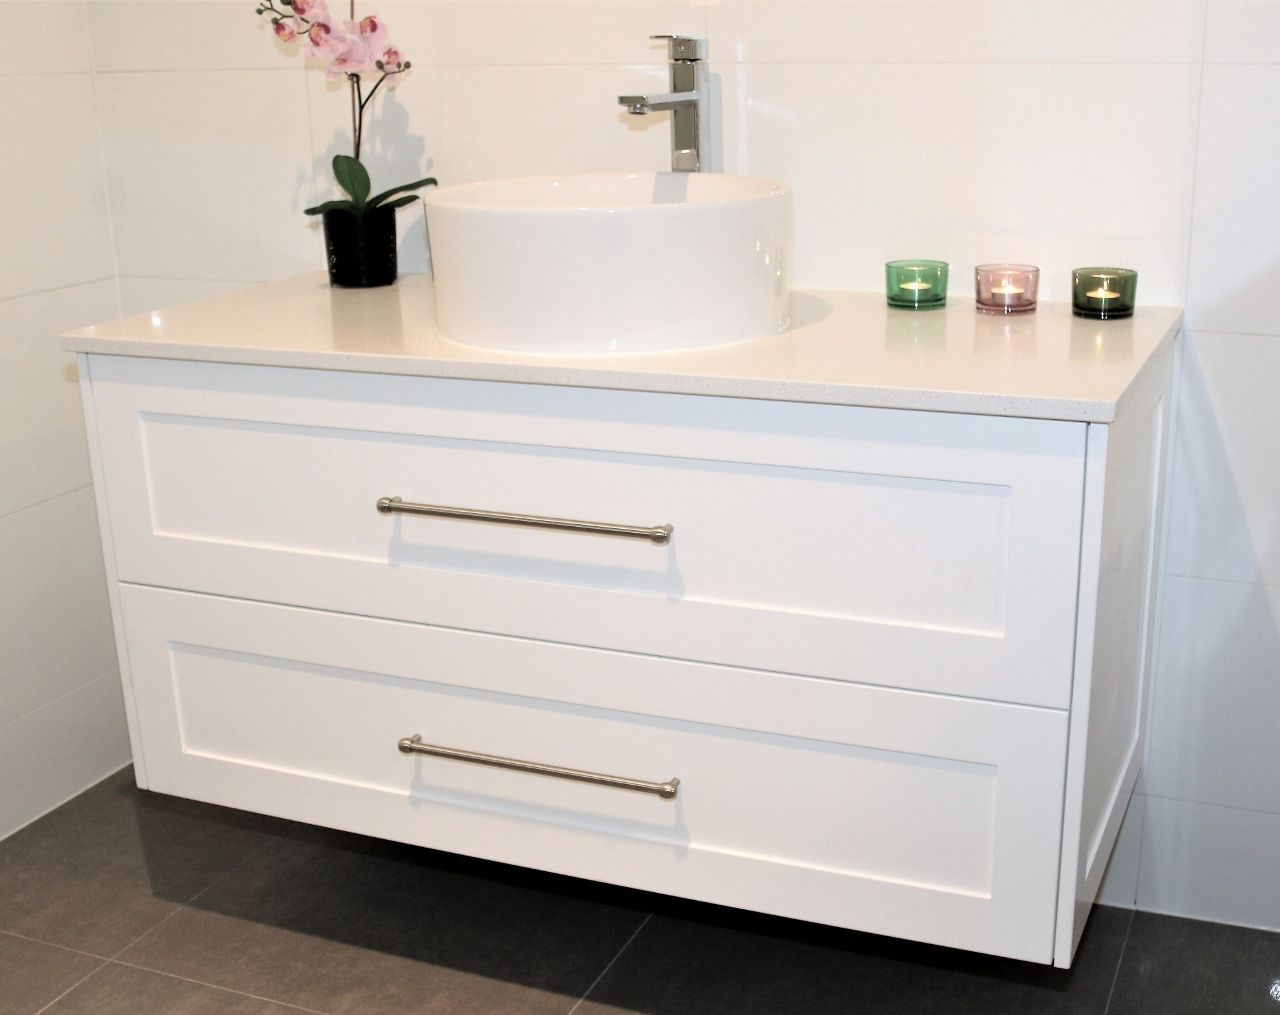 1200 Lucca Wall Hung Vanity In Shaker Style Panel With Snow Caesarstone Top Shaker Stonetop